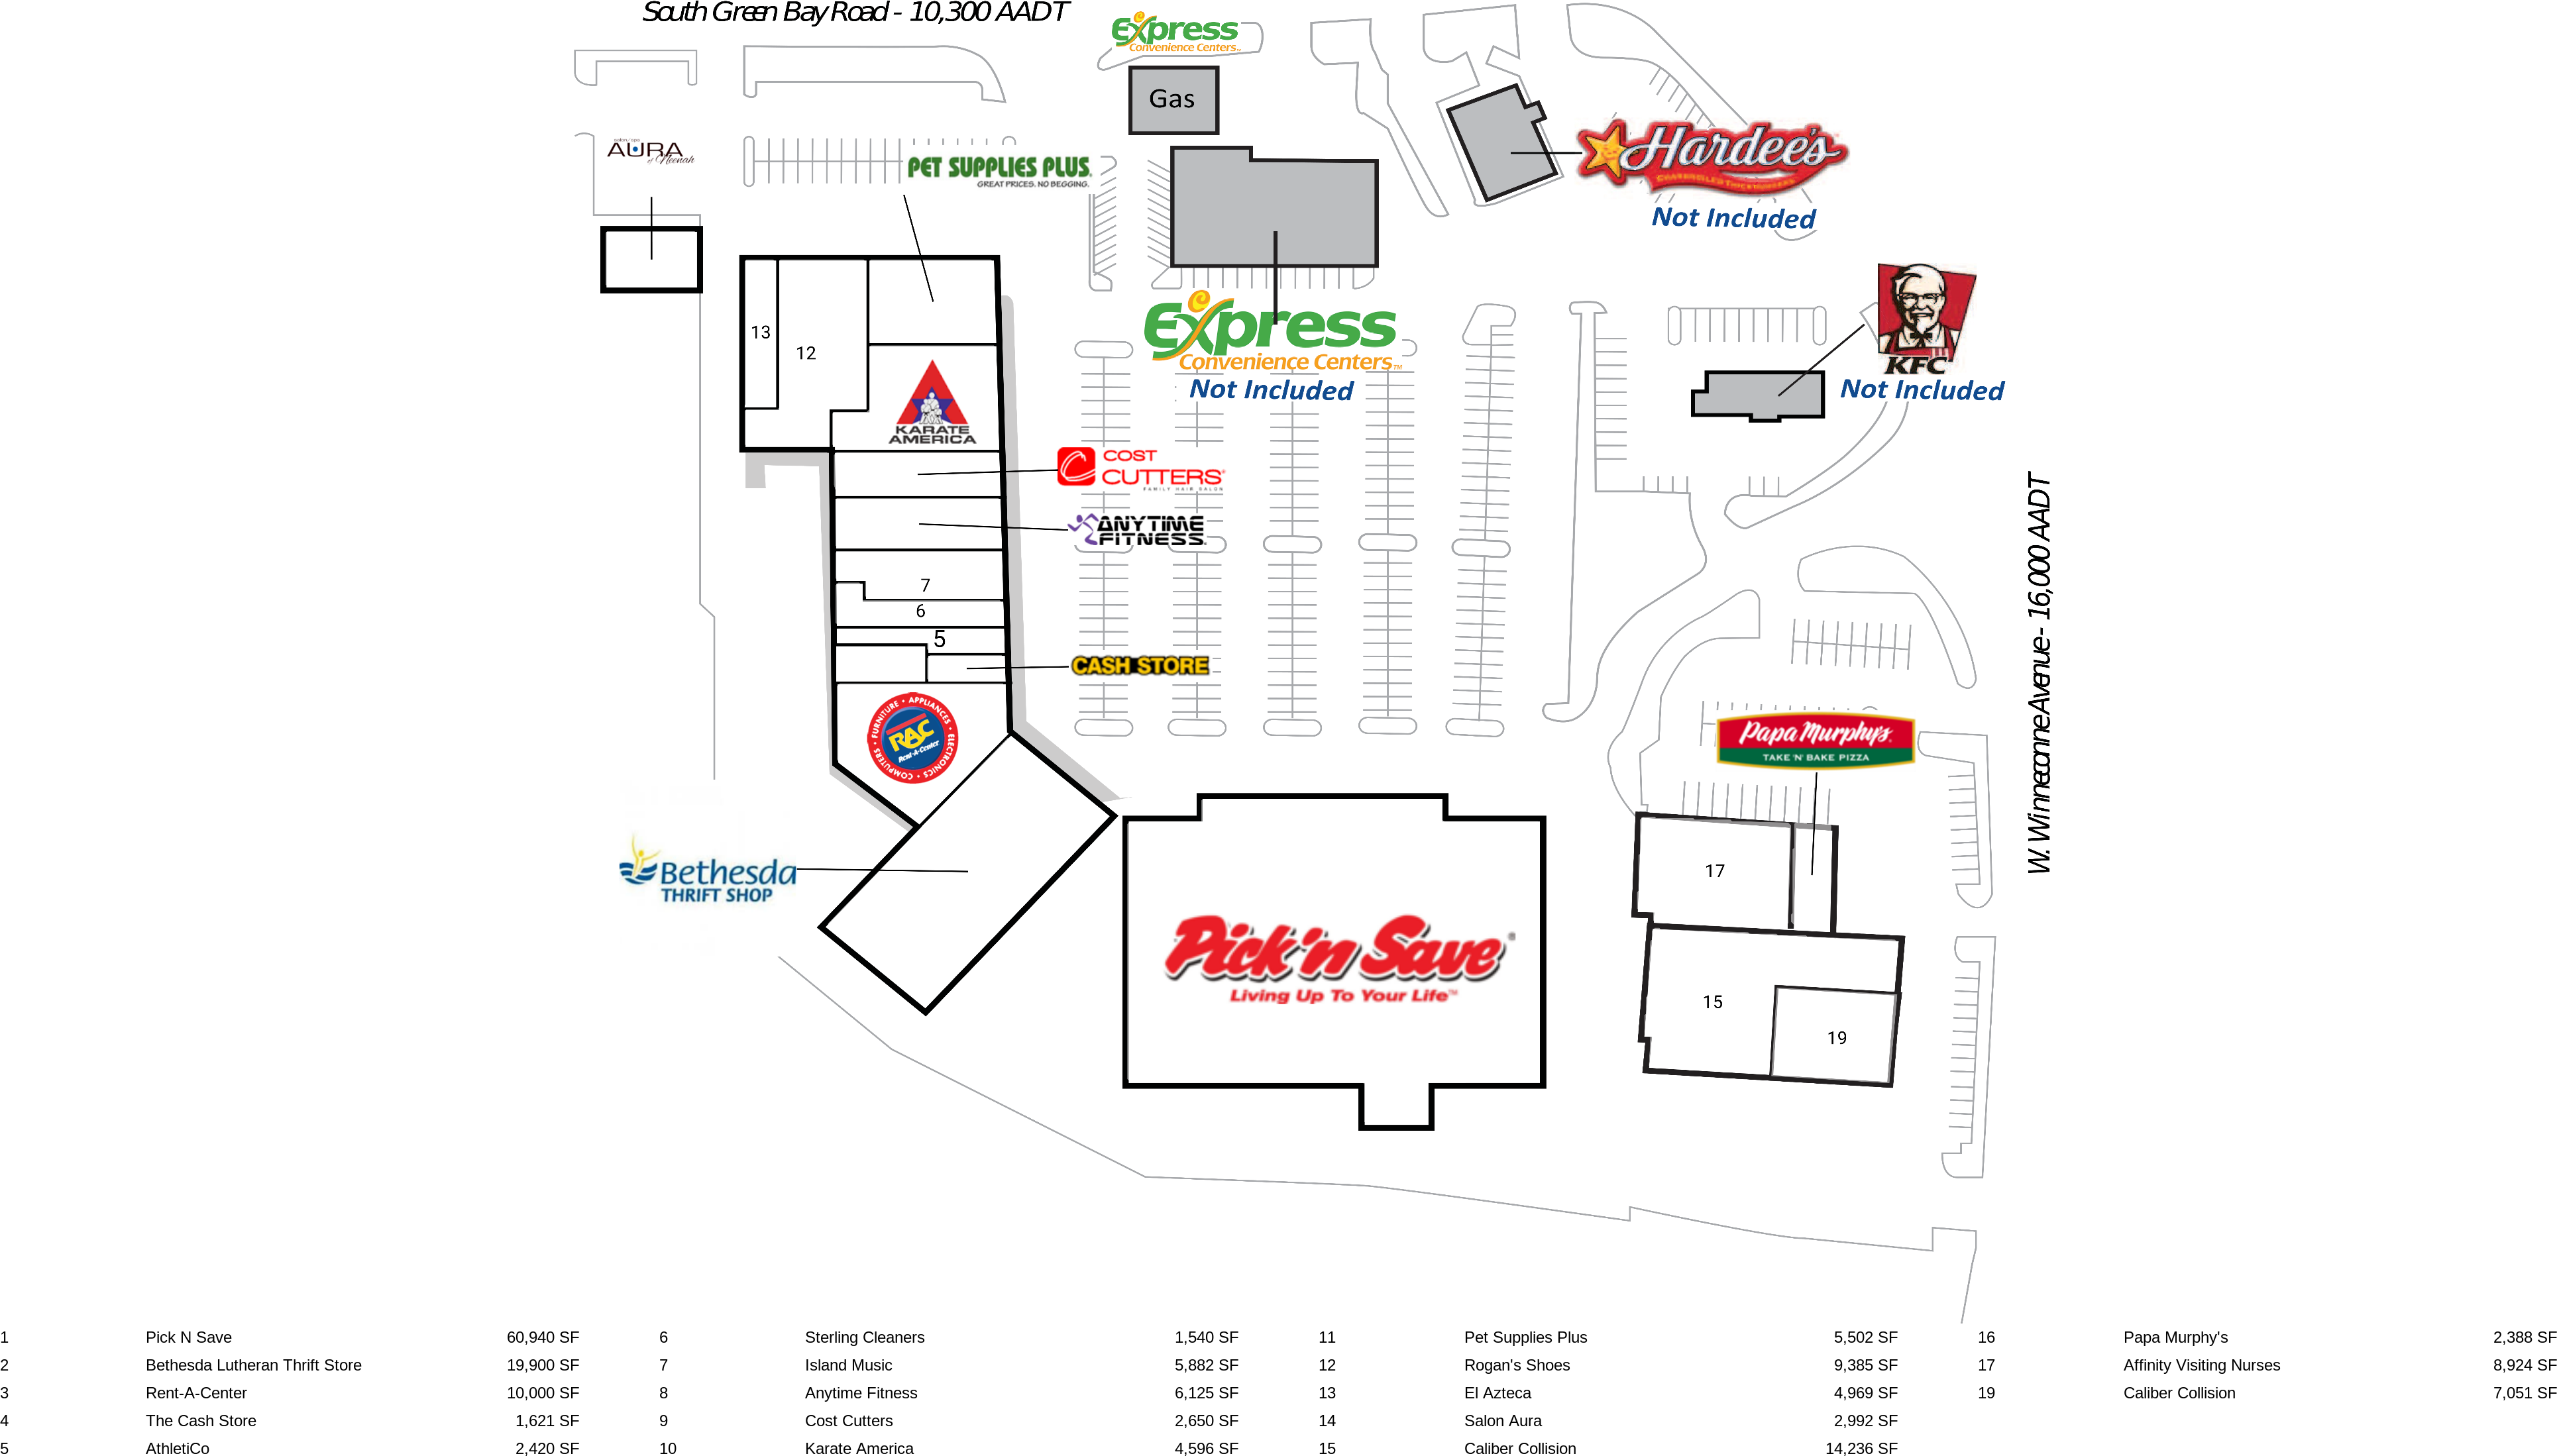 Neenah WI Fox Point Plaza Retail Space For Lease Inland